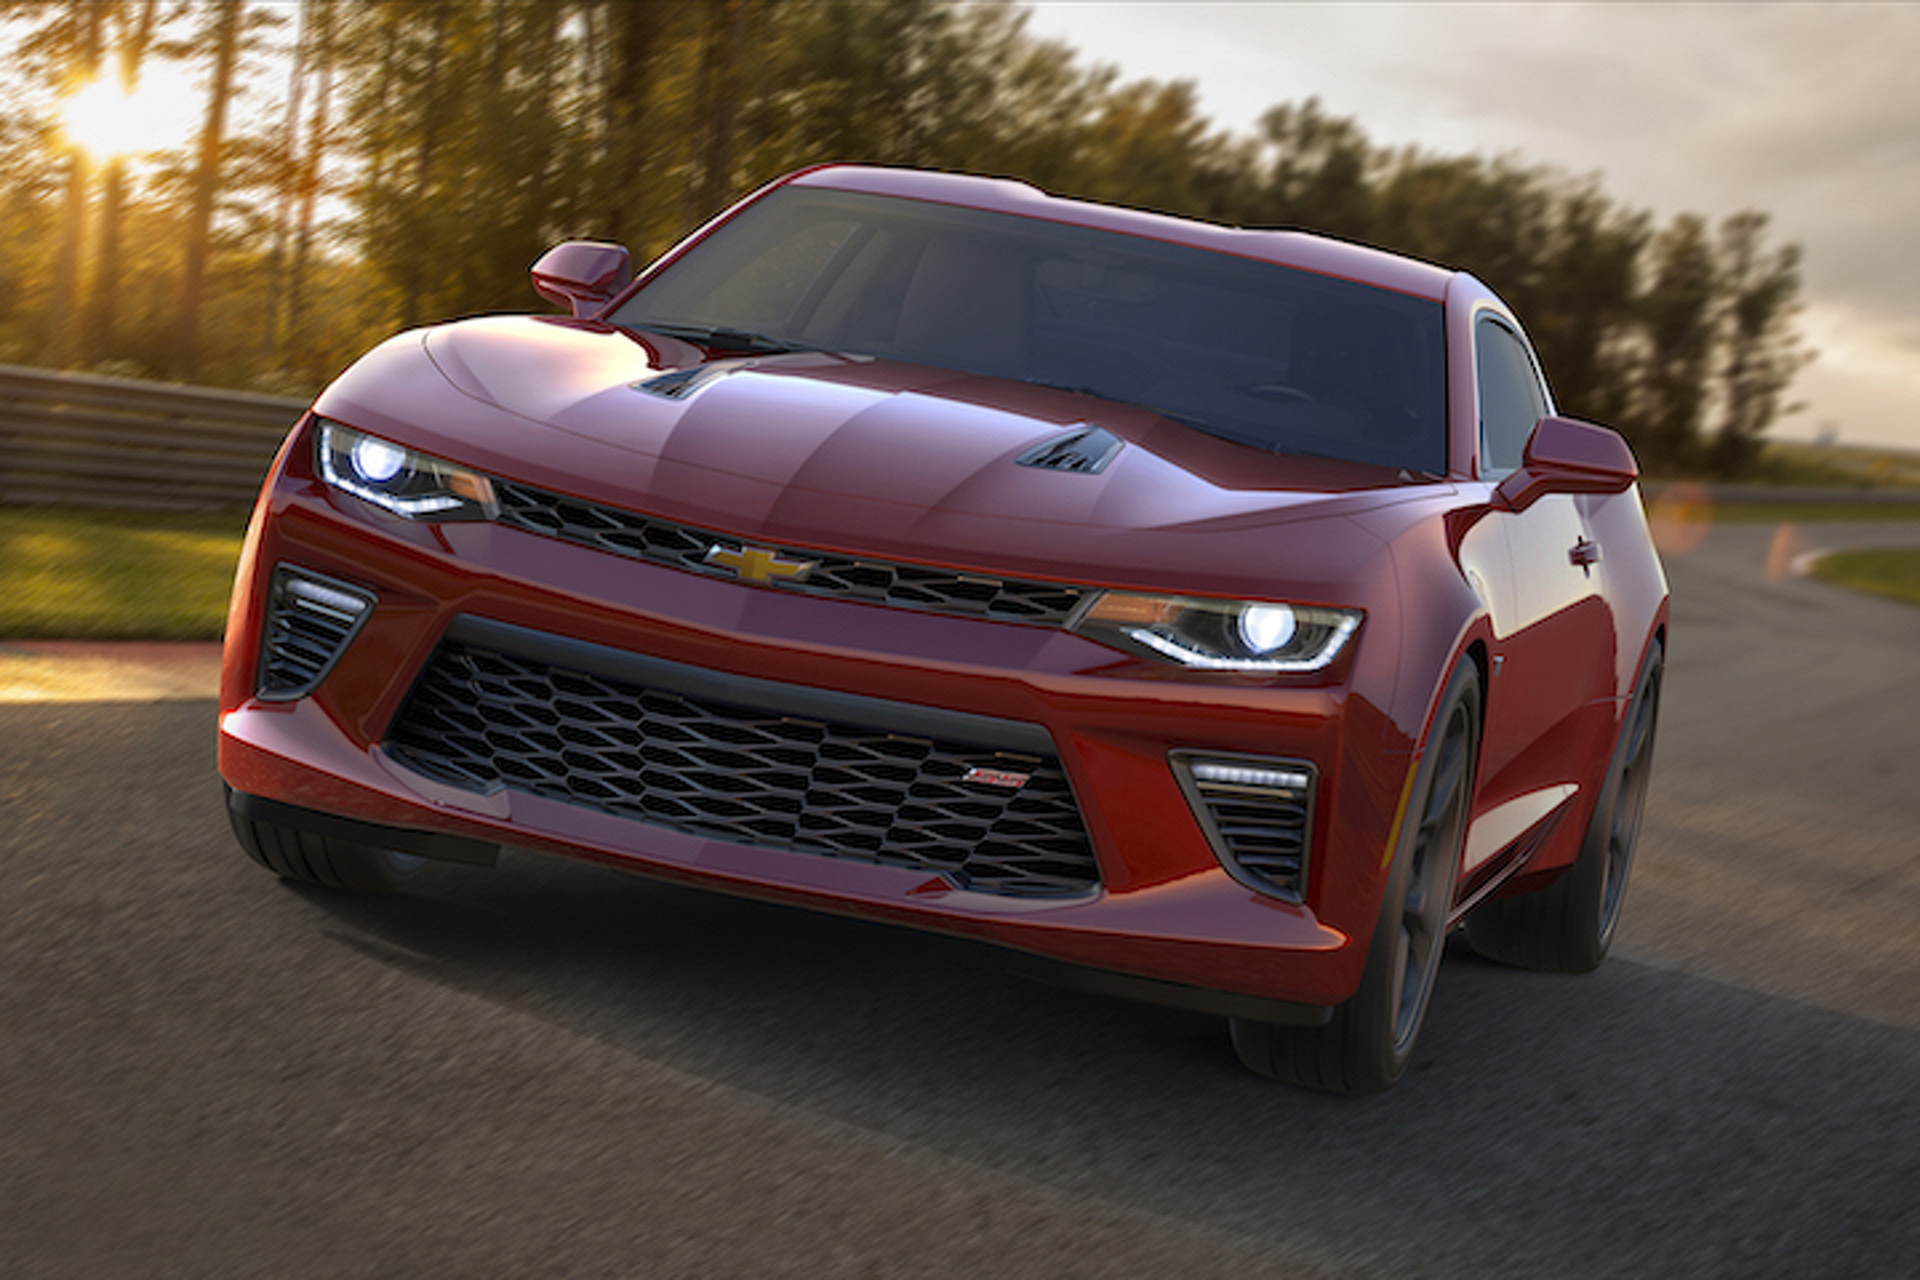 Mustang vs. Camaro: A Sales War to End all Wars